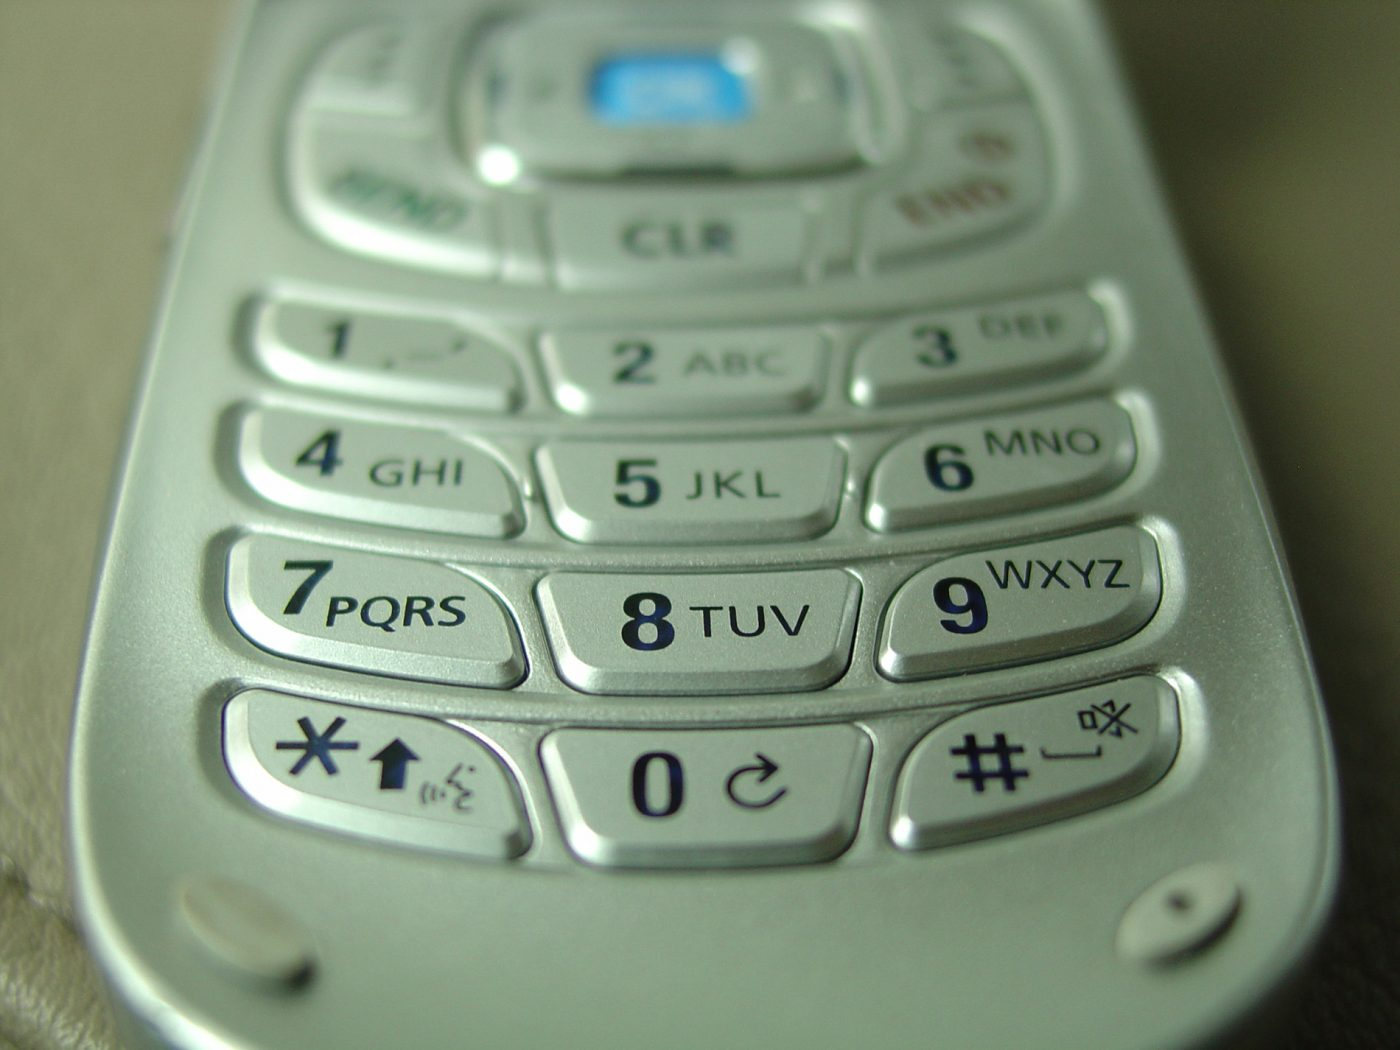 phone3-1230106-freeimages-by-alfonso-romero